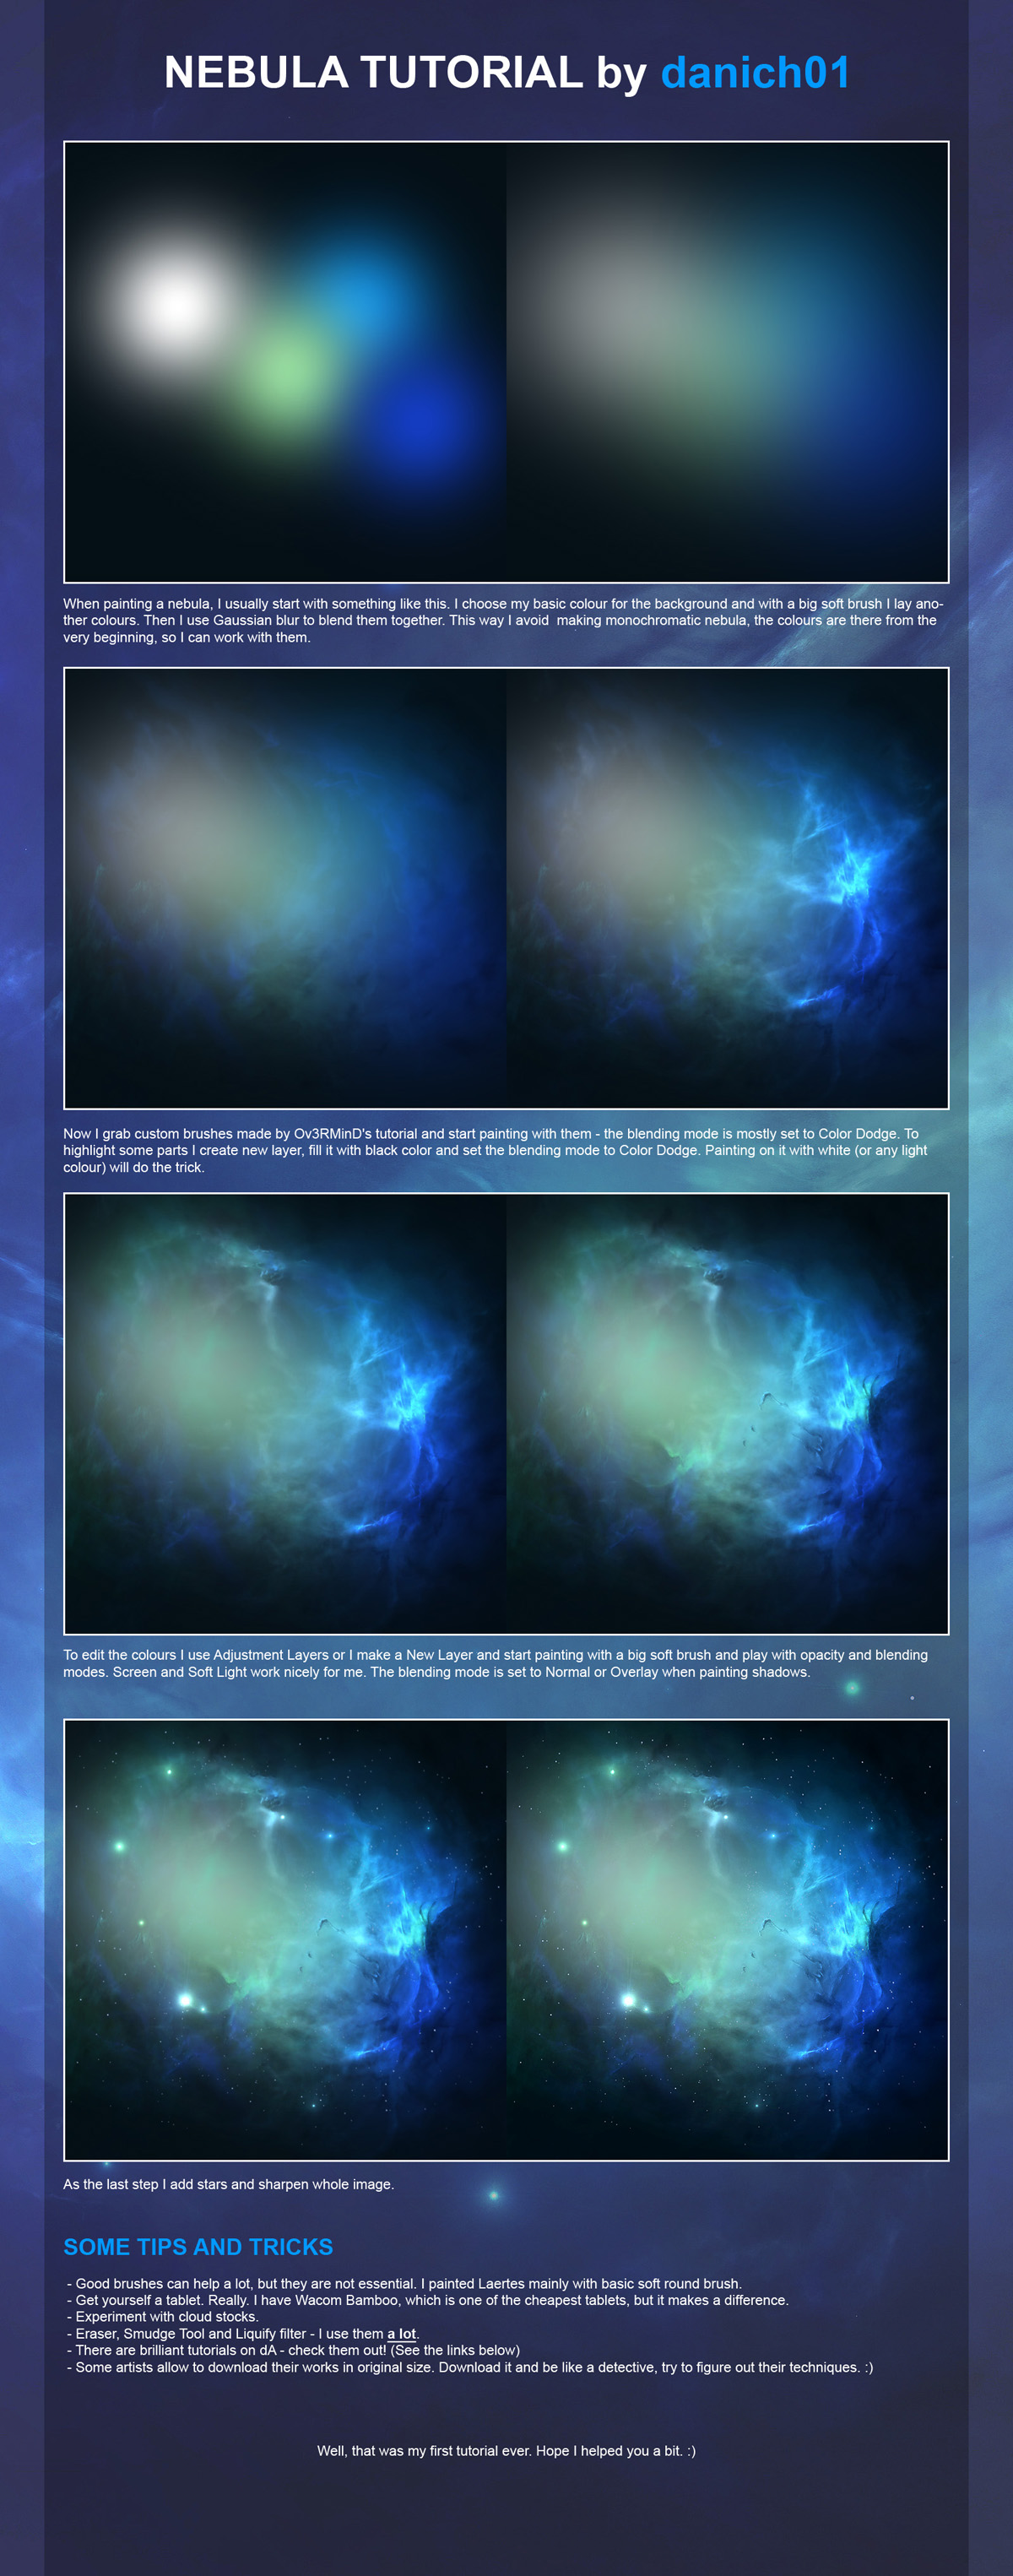 Nebula tutorial by danich01